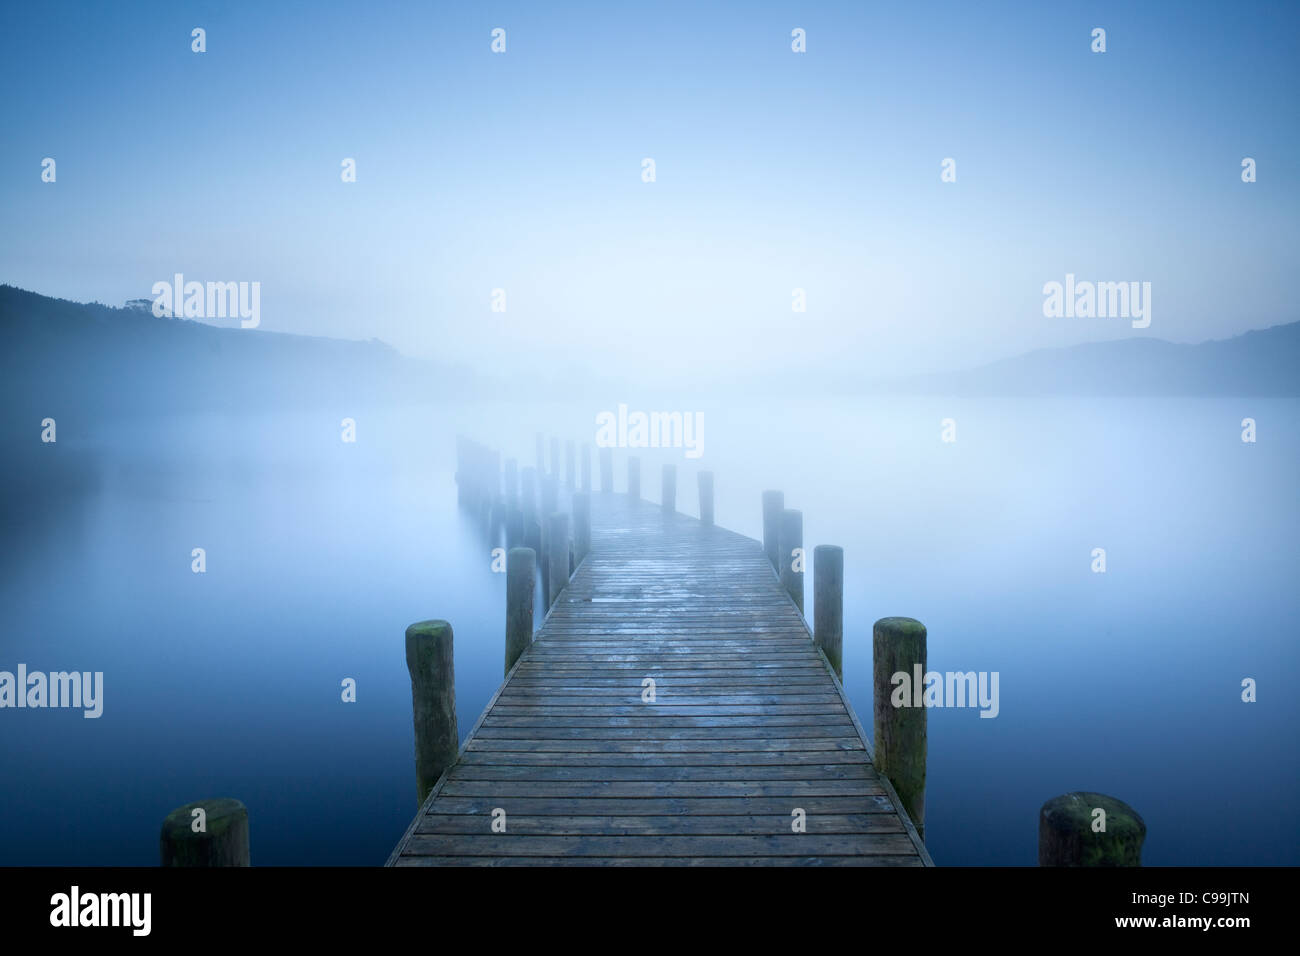 Landing Jetty on Coniston water, Lake District, Cumbria, England - Stock Image